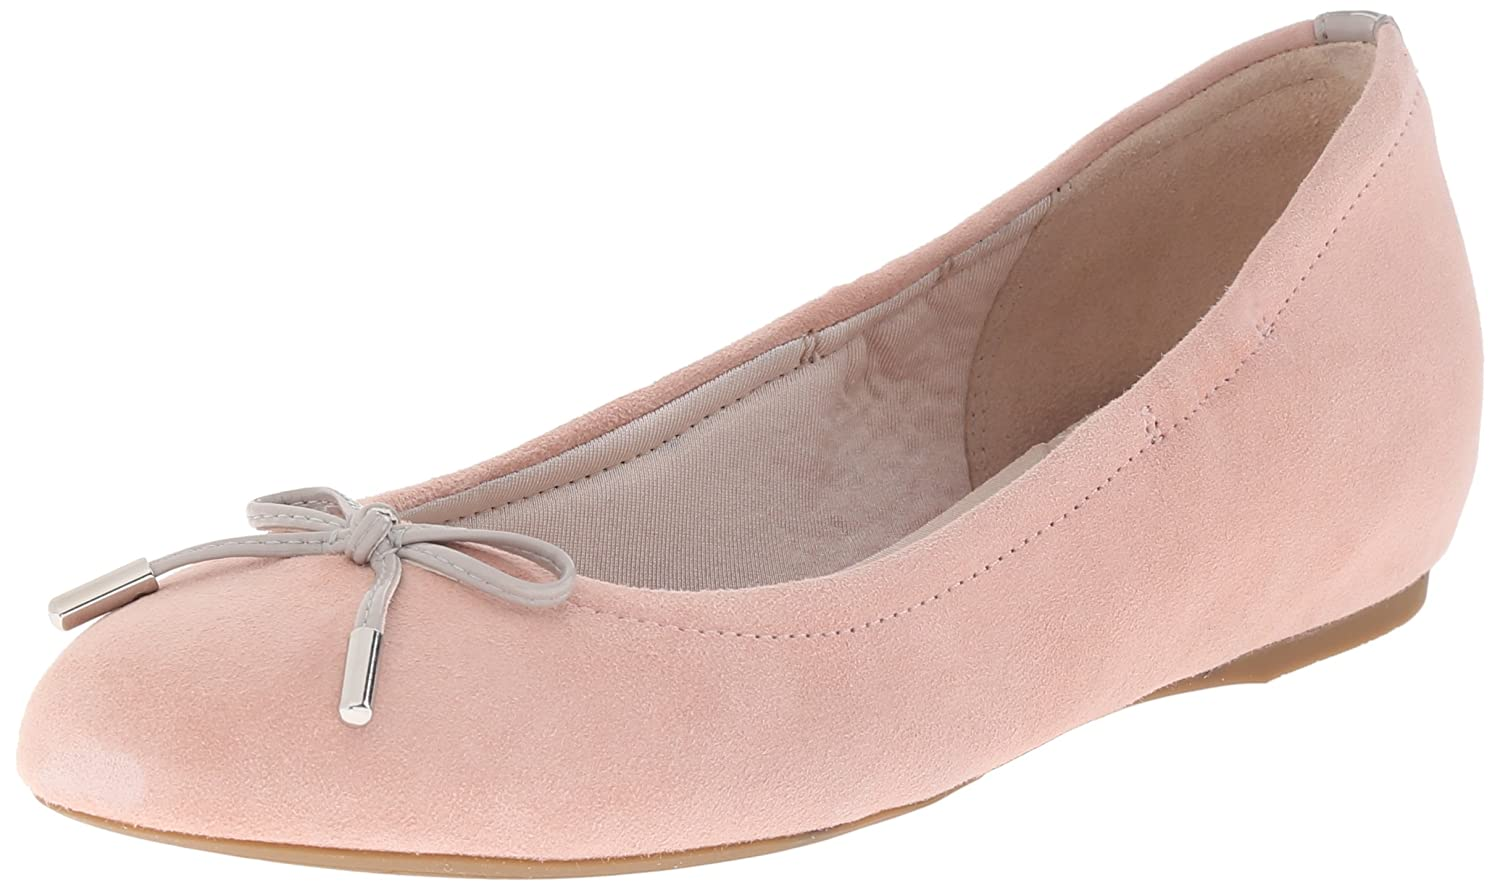 Pink Haze Kid Suede Rockport Women's Total Motion Hidden Wedge Tied Ballet Flat